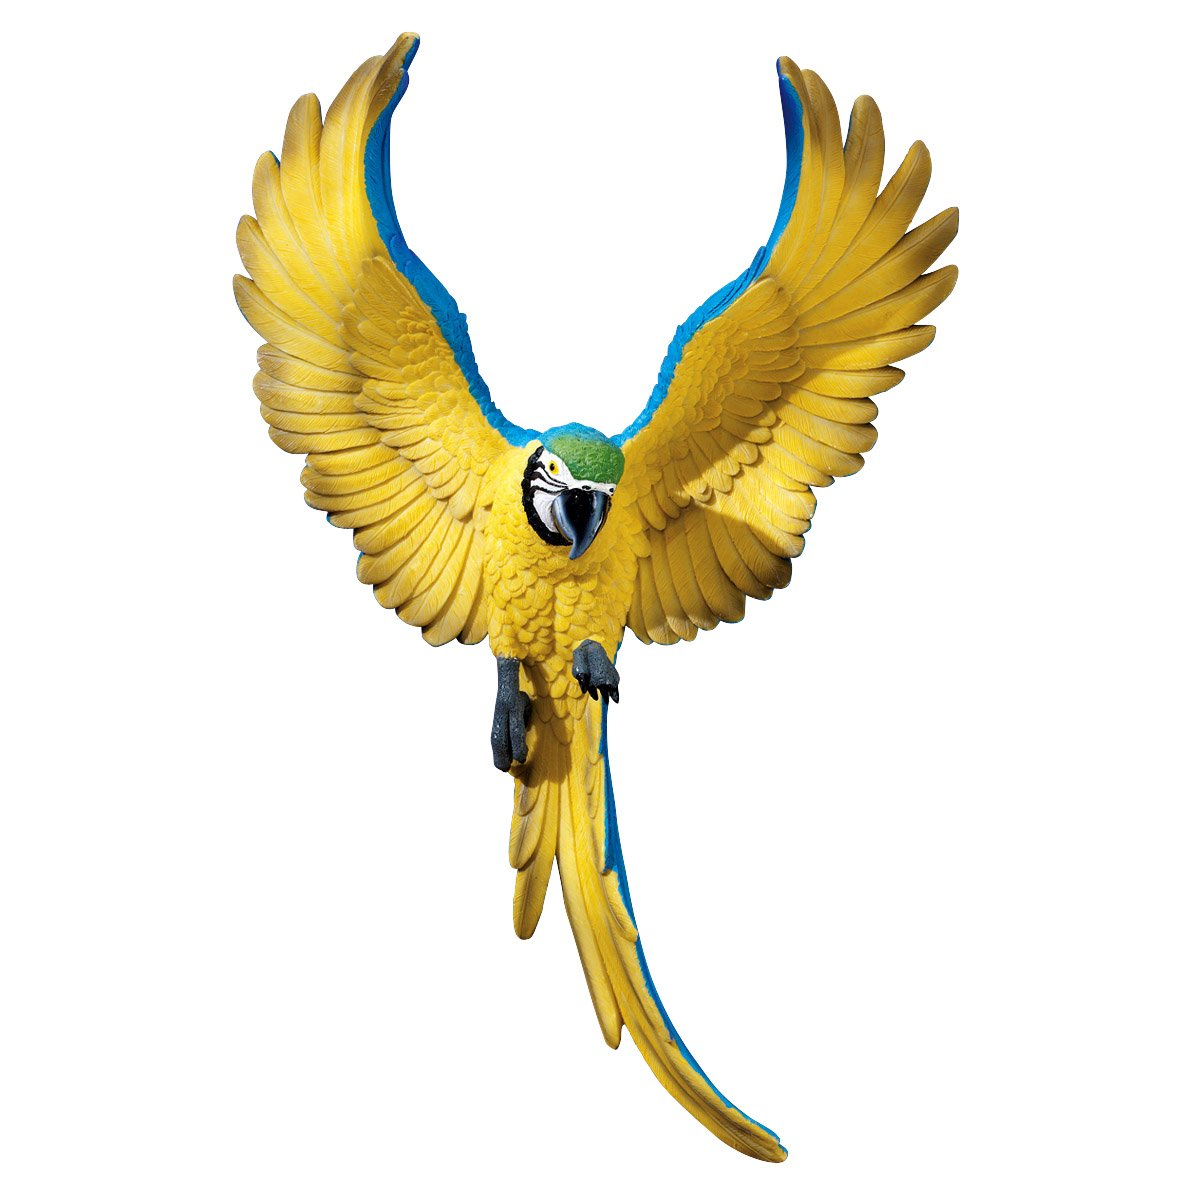 Amazon.com: Design Toscano Phineas the Flapping Macaw Bird Wall ...